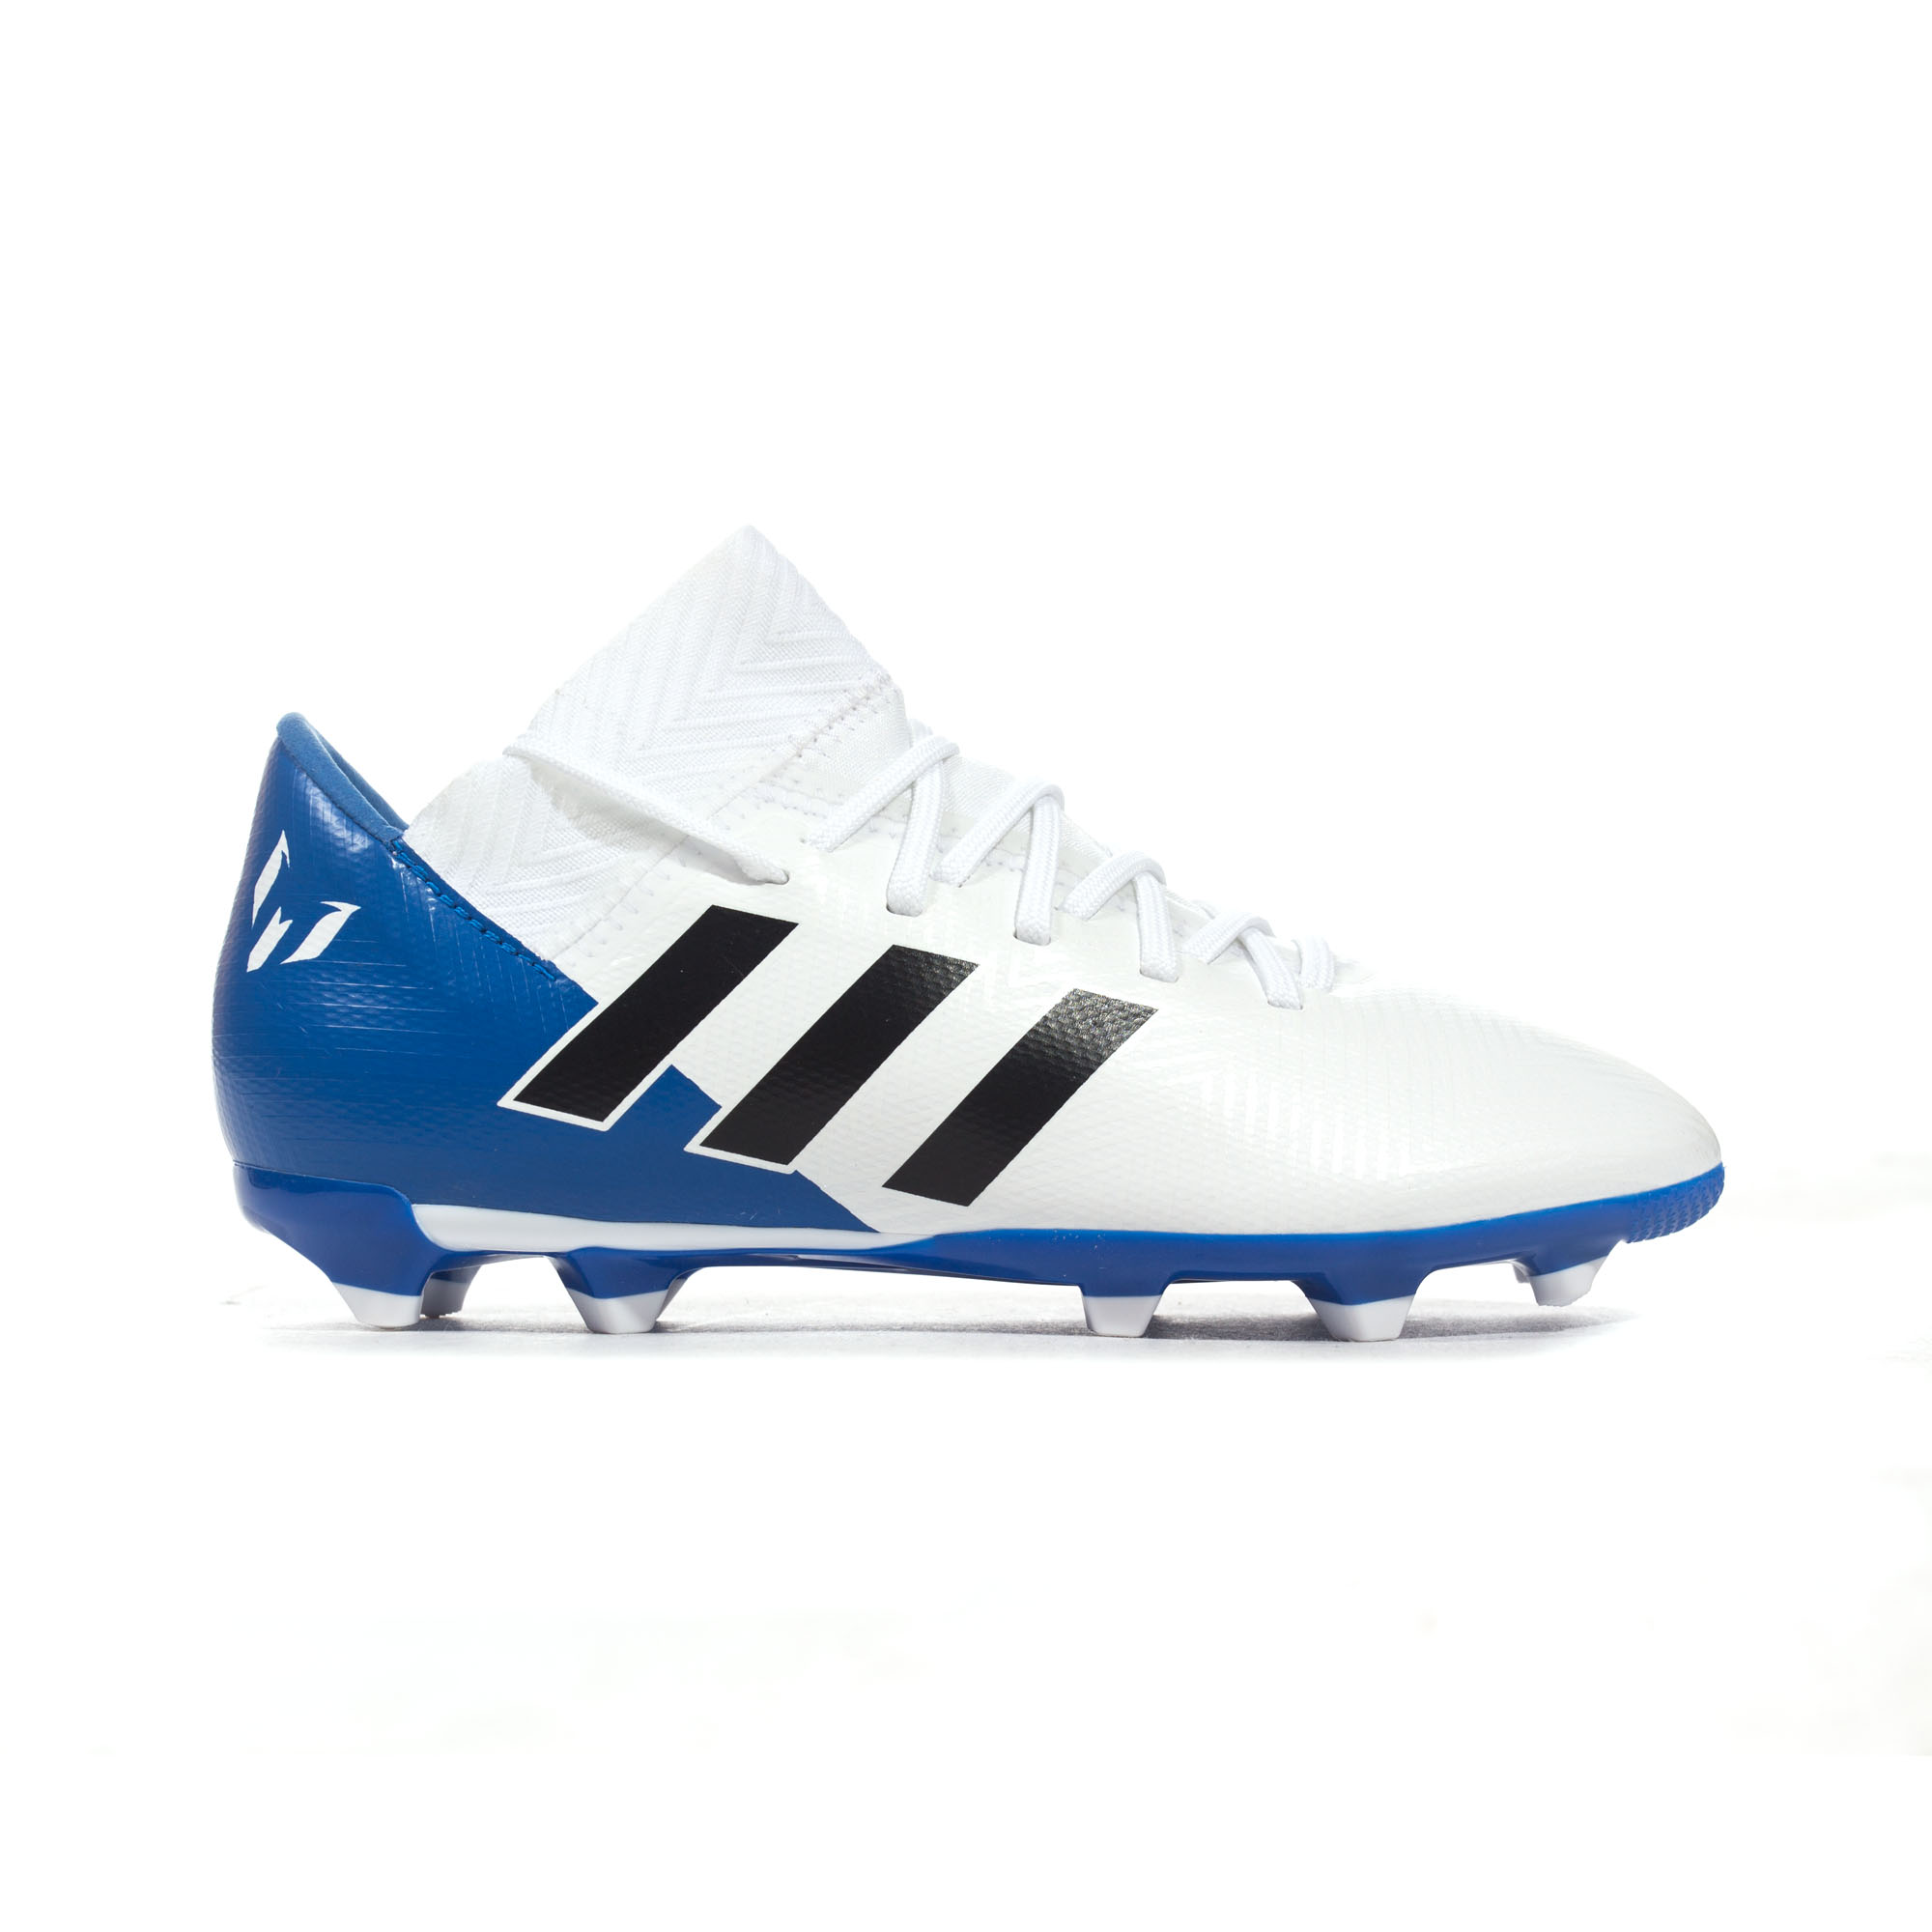 premium selection 274ae 65f4a Details about adidas Nemeziz Messi 18.3 FG Firm Ground Kids Football Soccer  Boot Team Mode